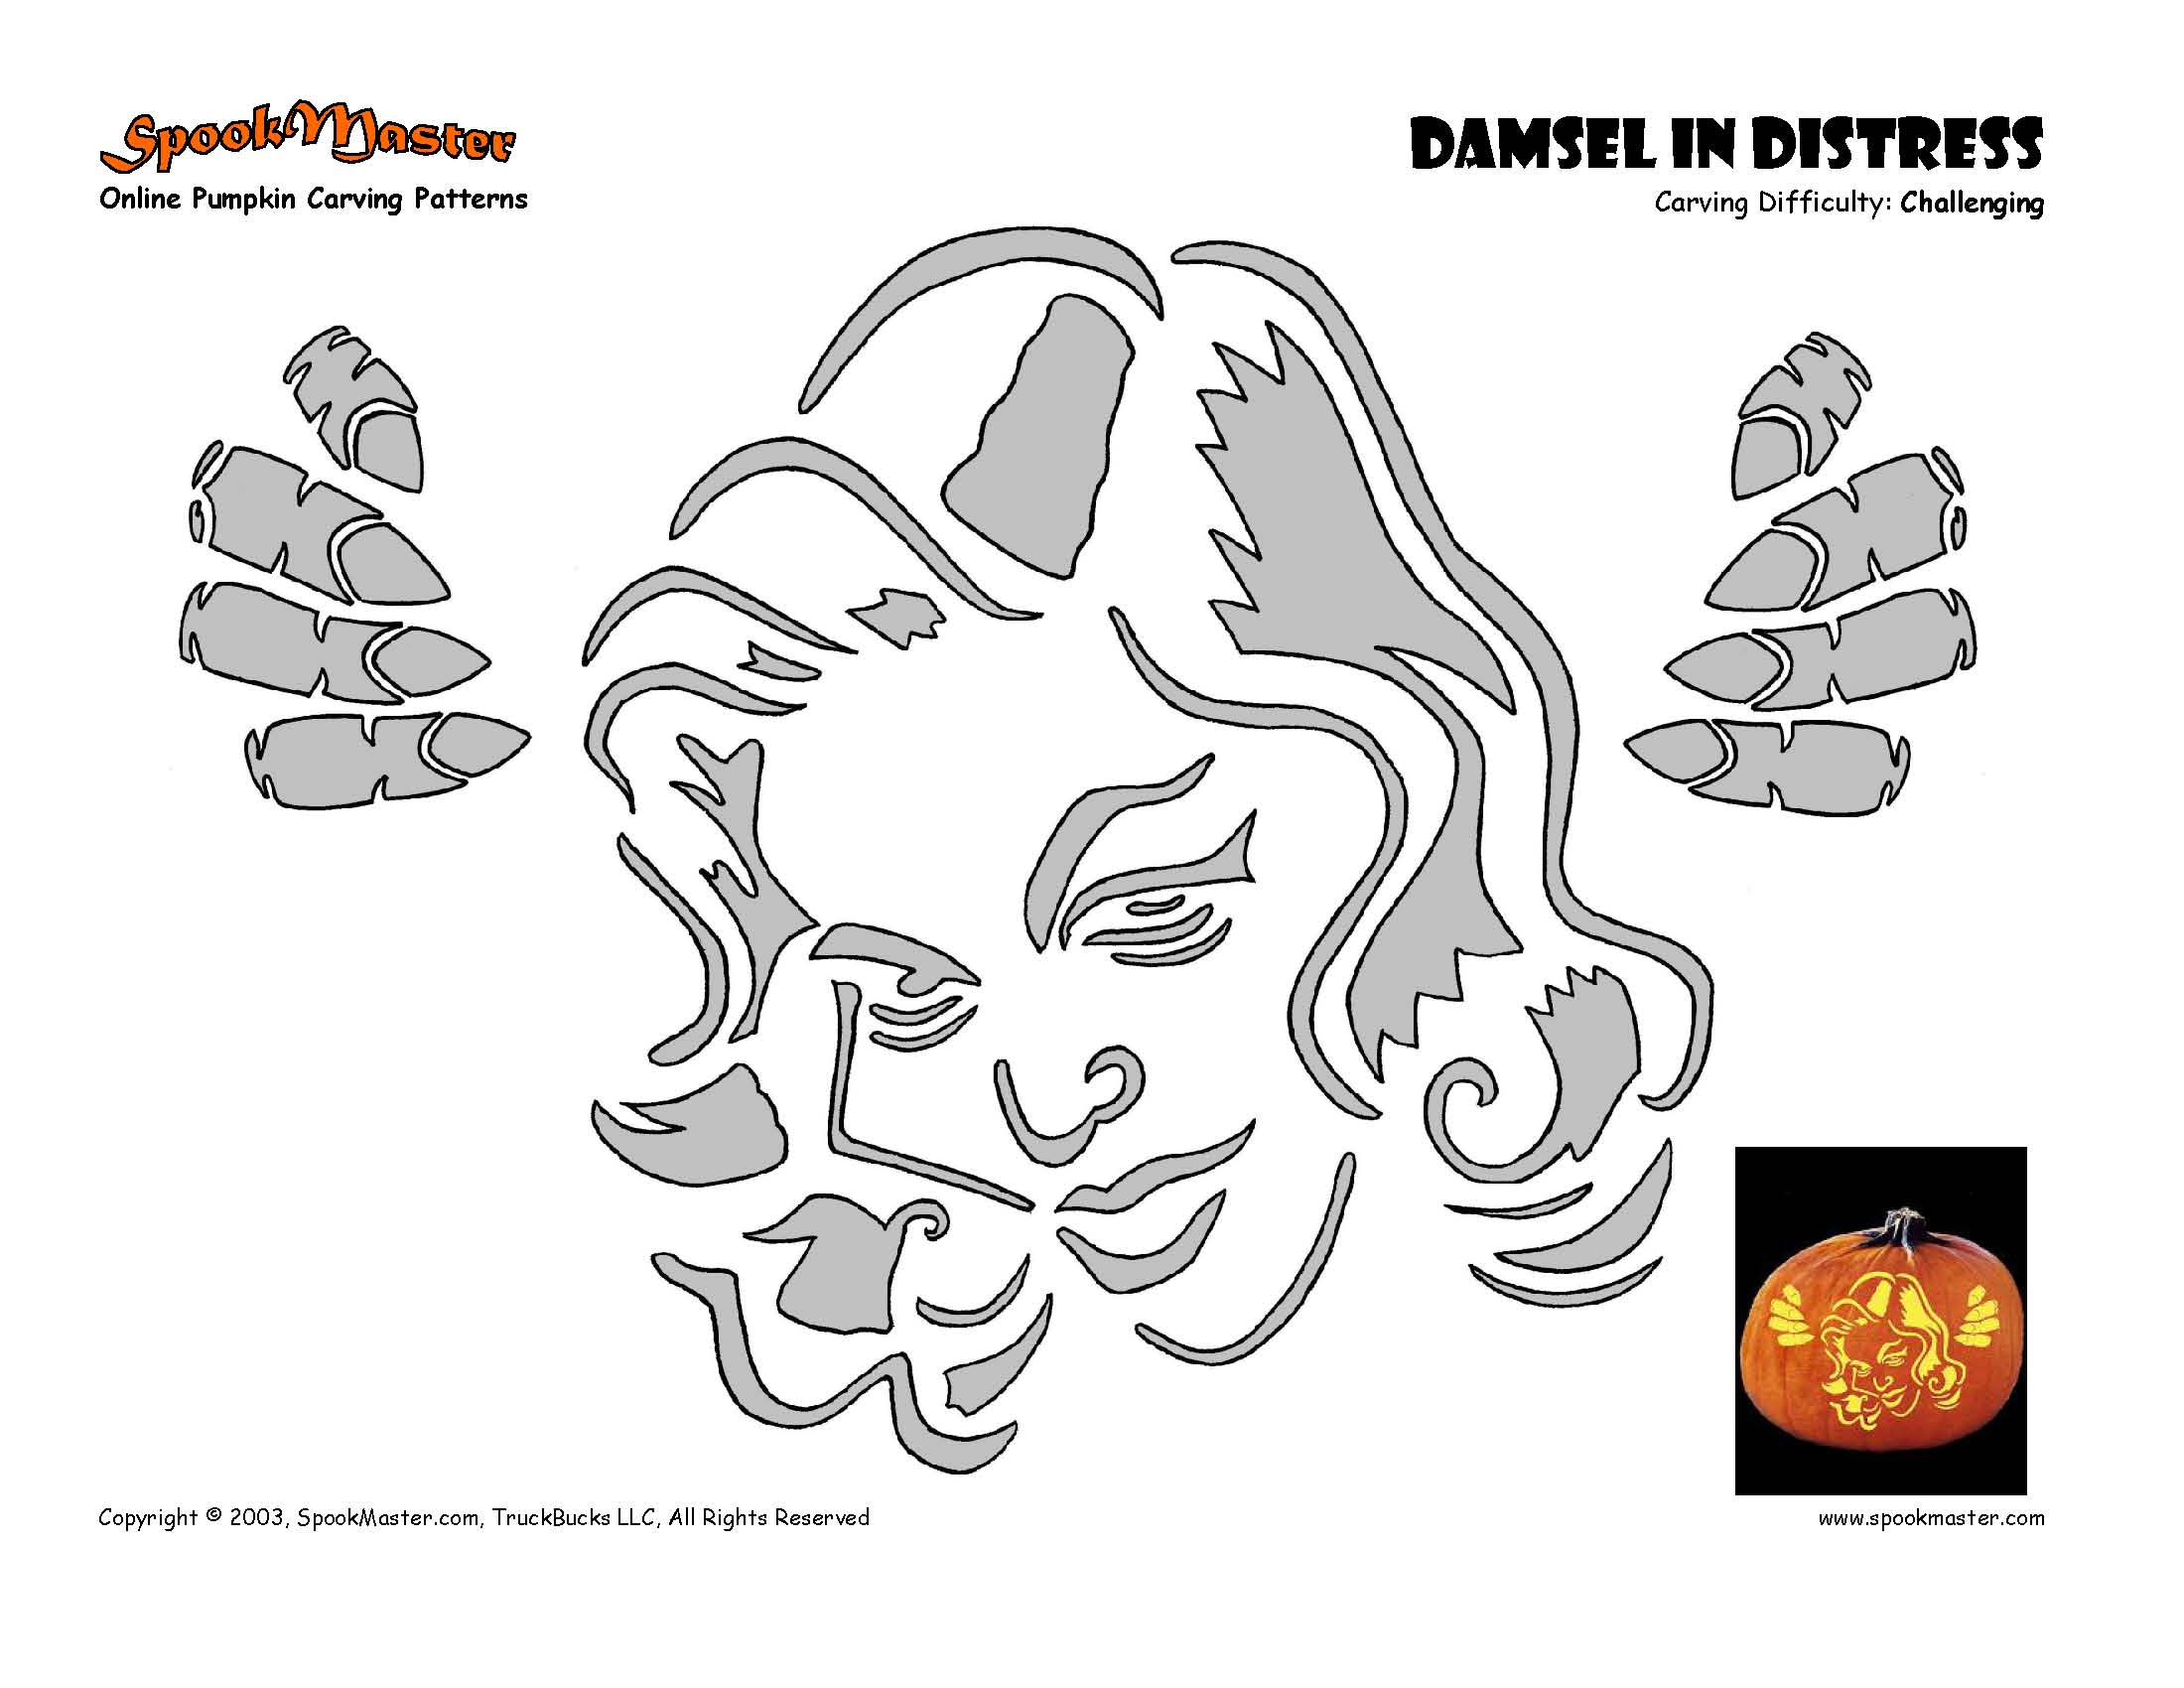 Animal Pumpkin Carving Patterns: This Halloween, Carve a Pumpkin